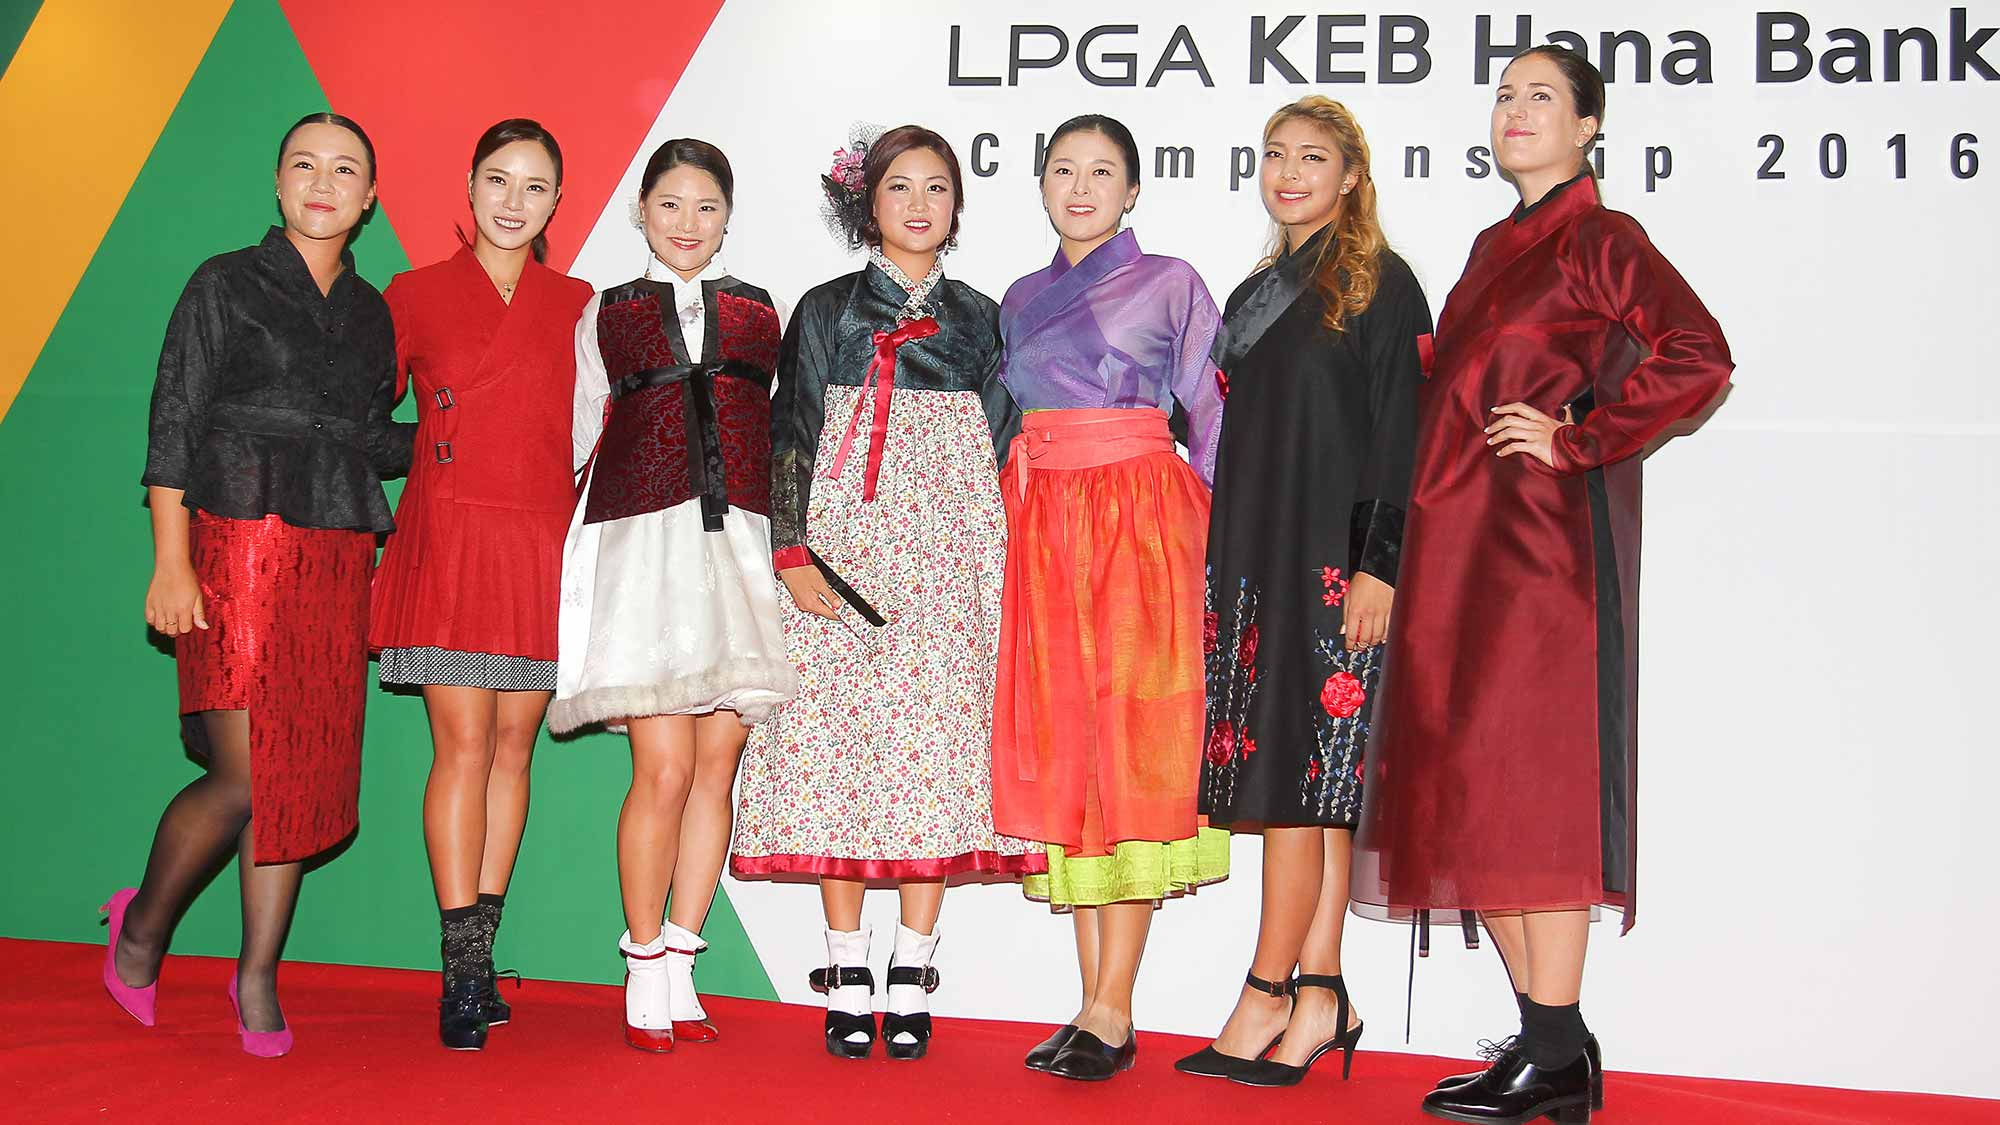 Players pose for a photo at the LPGA KEB Hana Bank Pro-Am Party